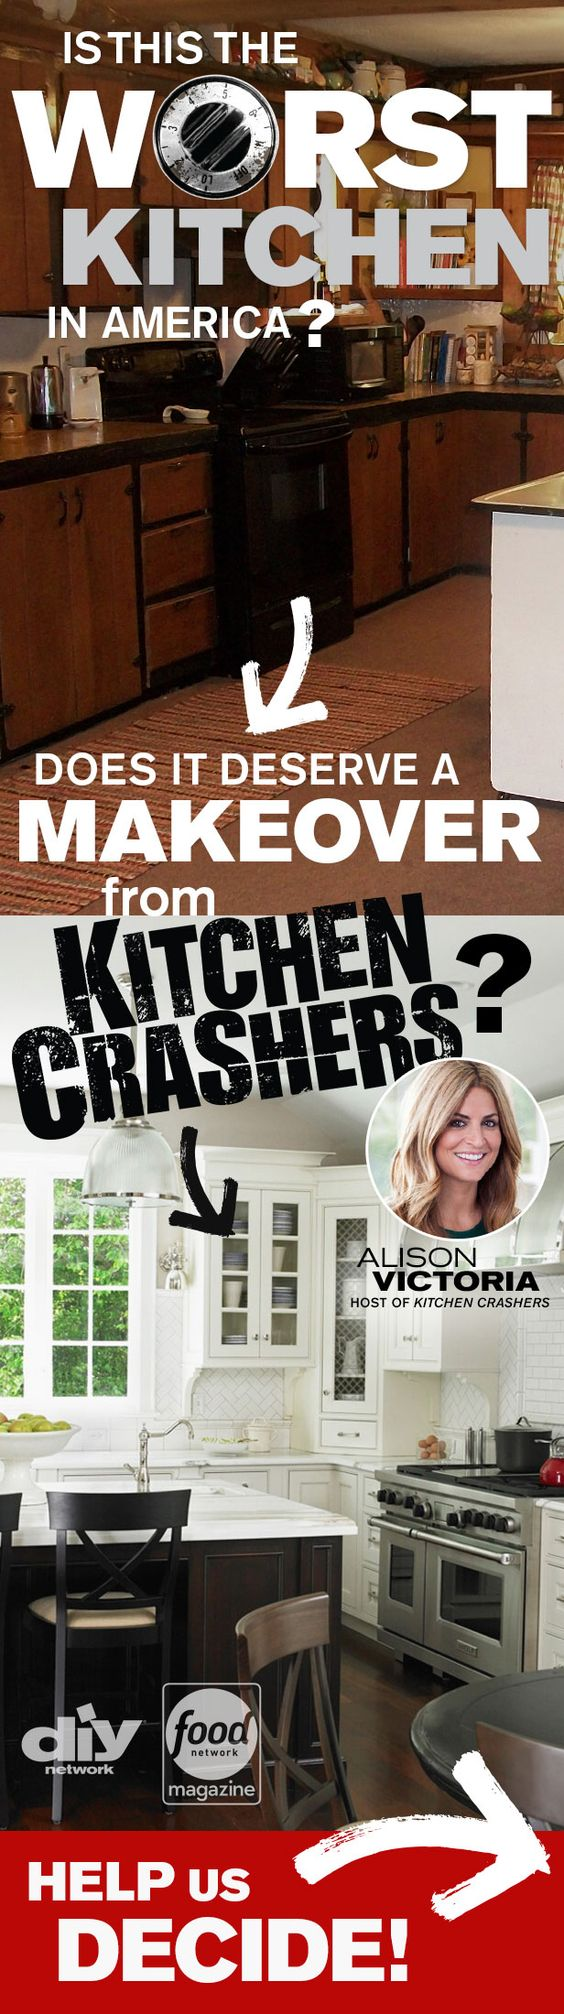 Diy Kitchen Sweepstakes The Most Incredible Along With Beautiful Diy Kitchen Sweepstakes